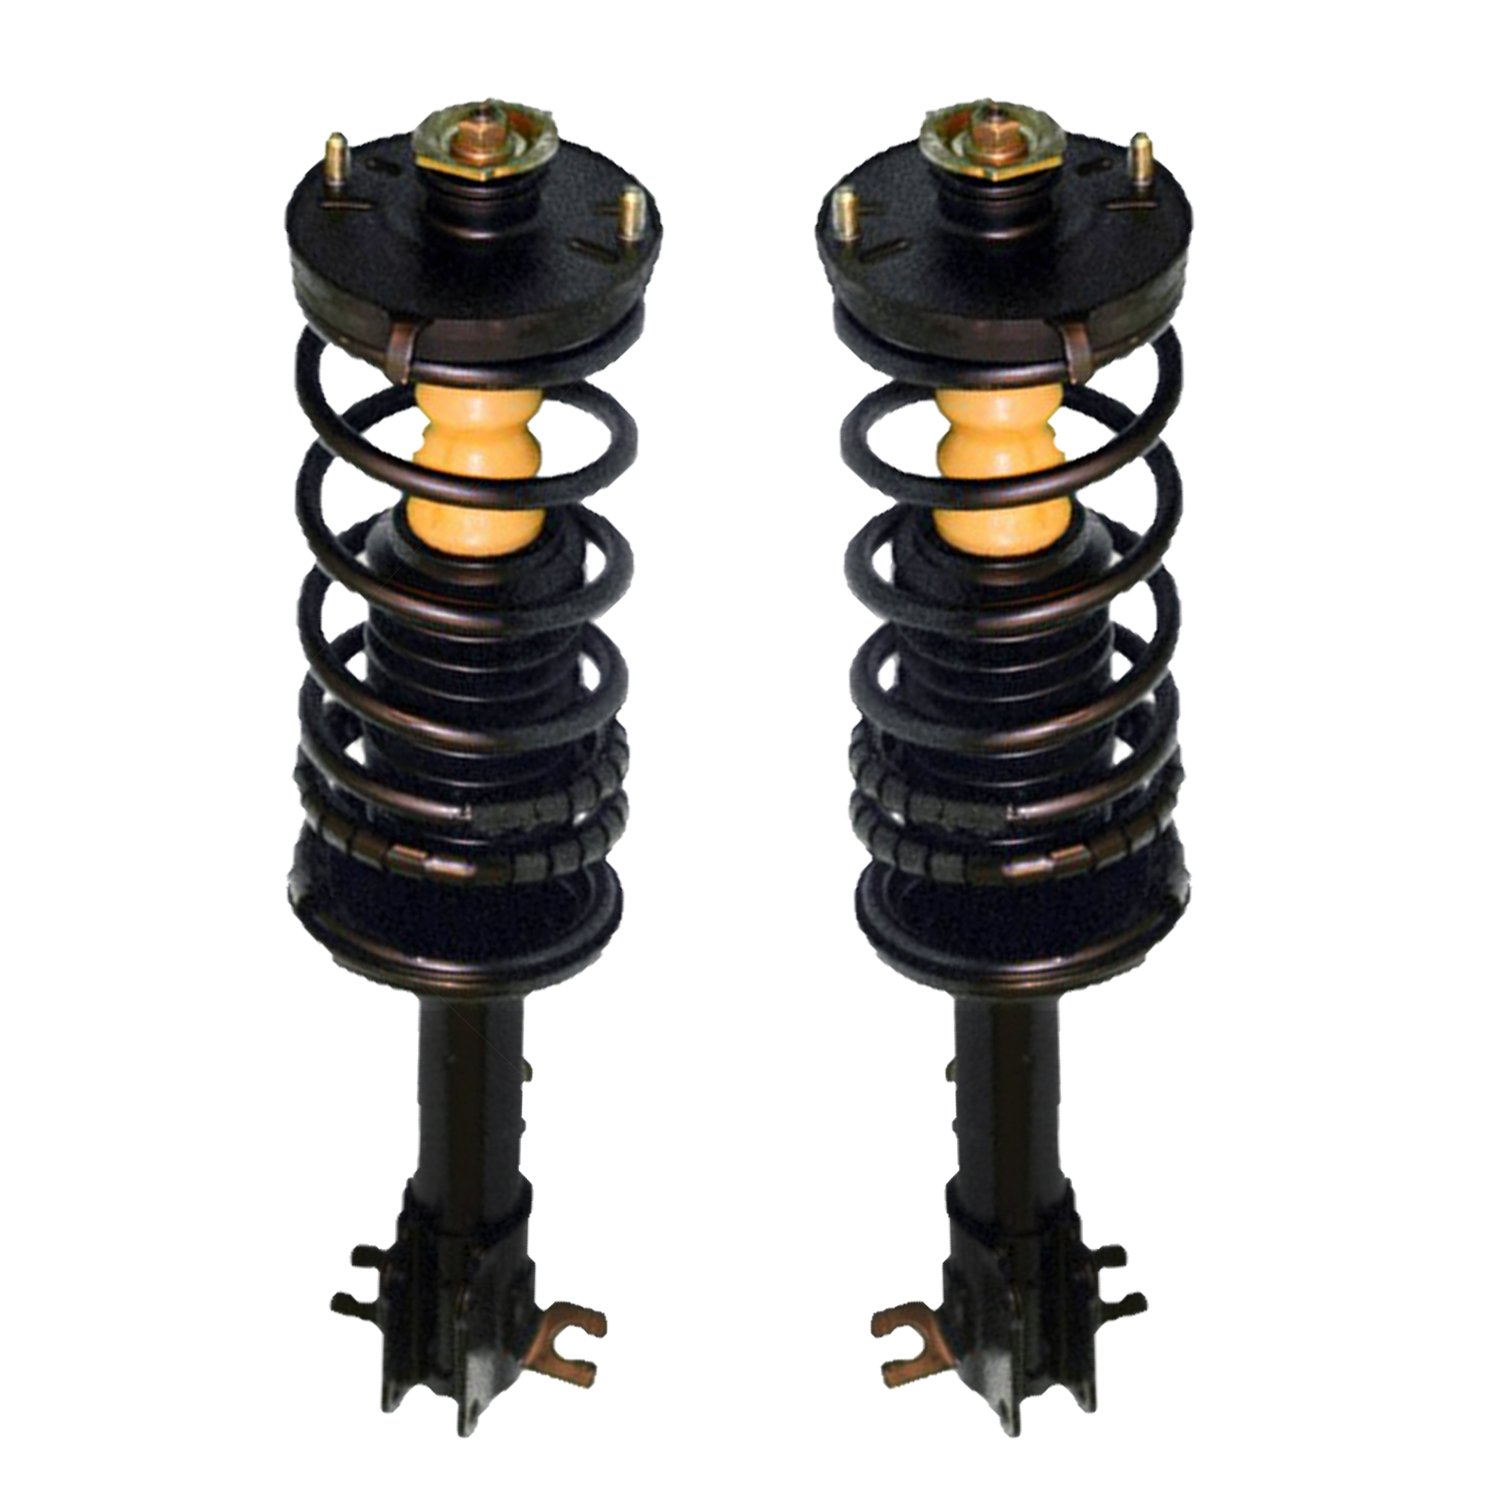 Unity Automotive 2-15200-001 Quick Complete Rear Pair, Spring, and Strut Mount Assembly Kit